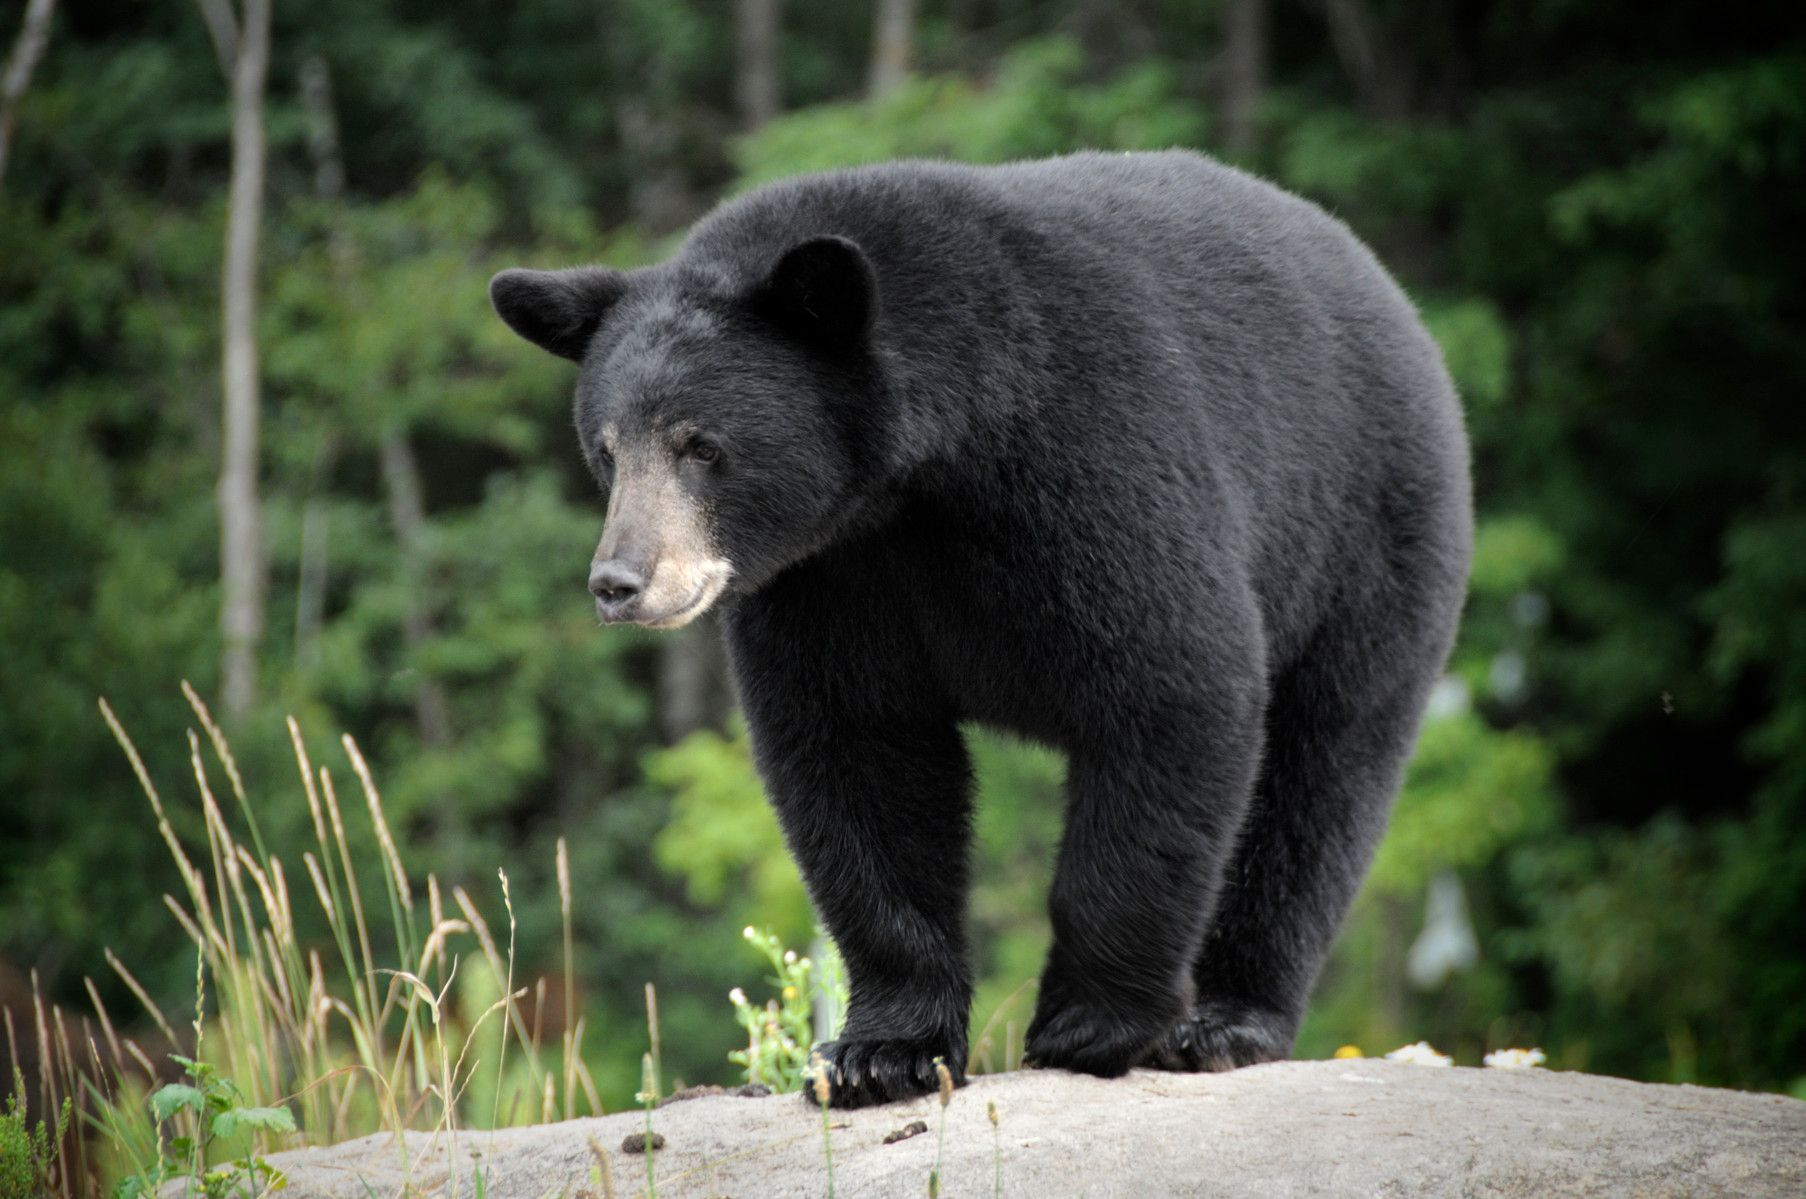 Image of a black bear standing on a rock.